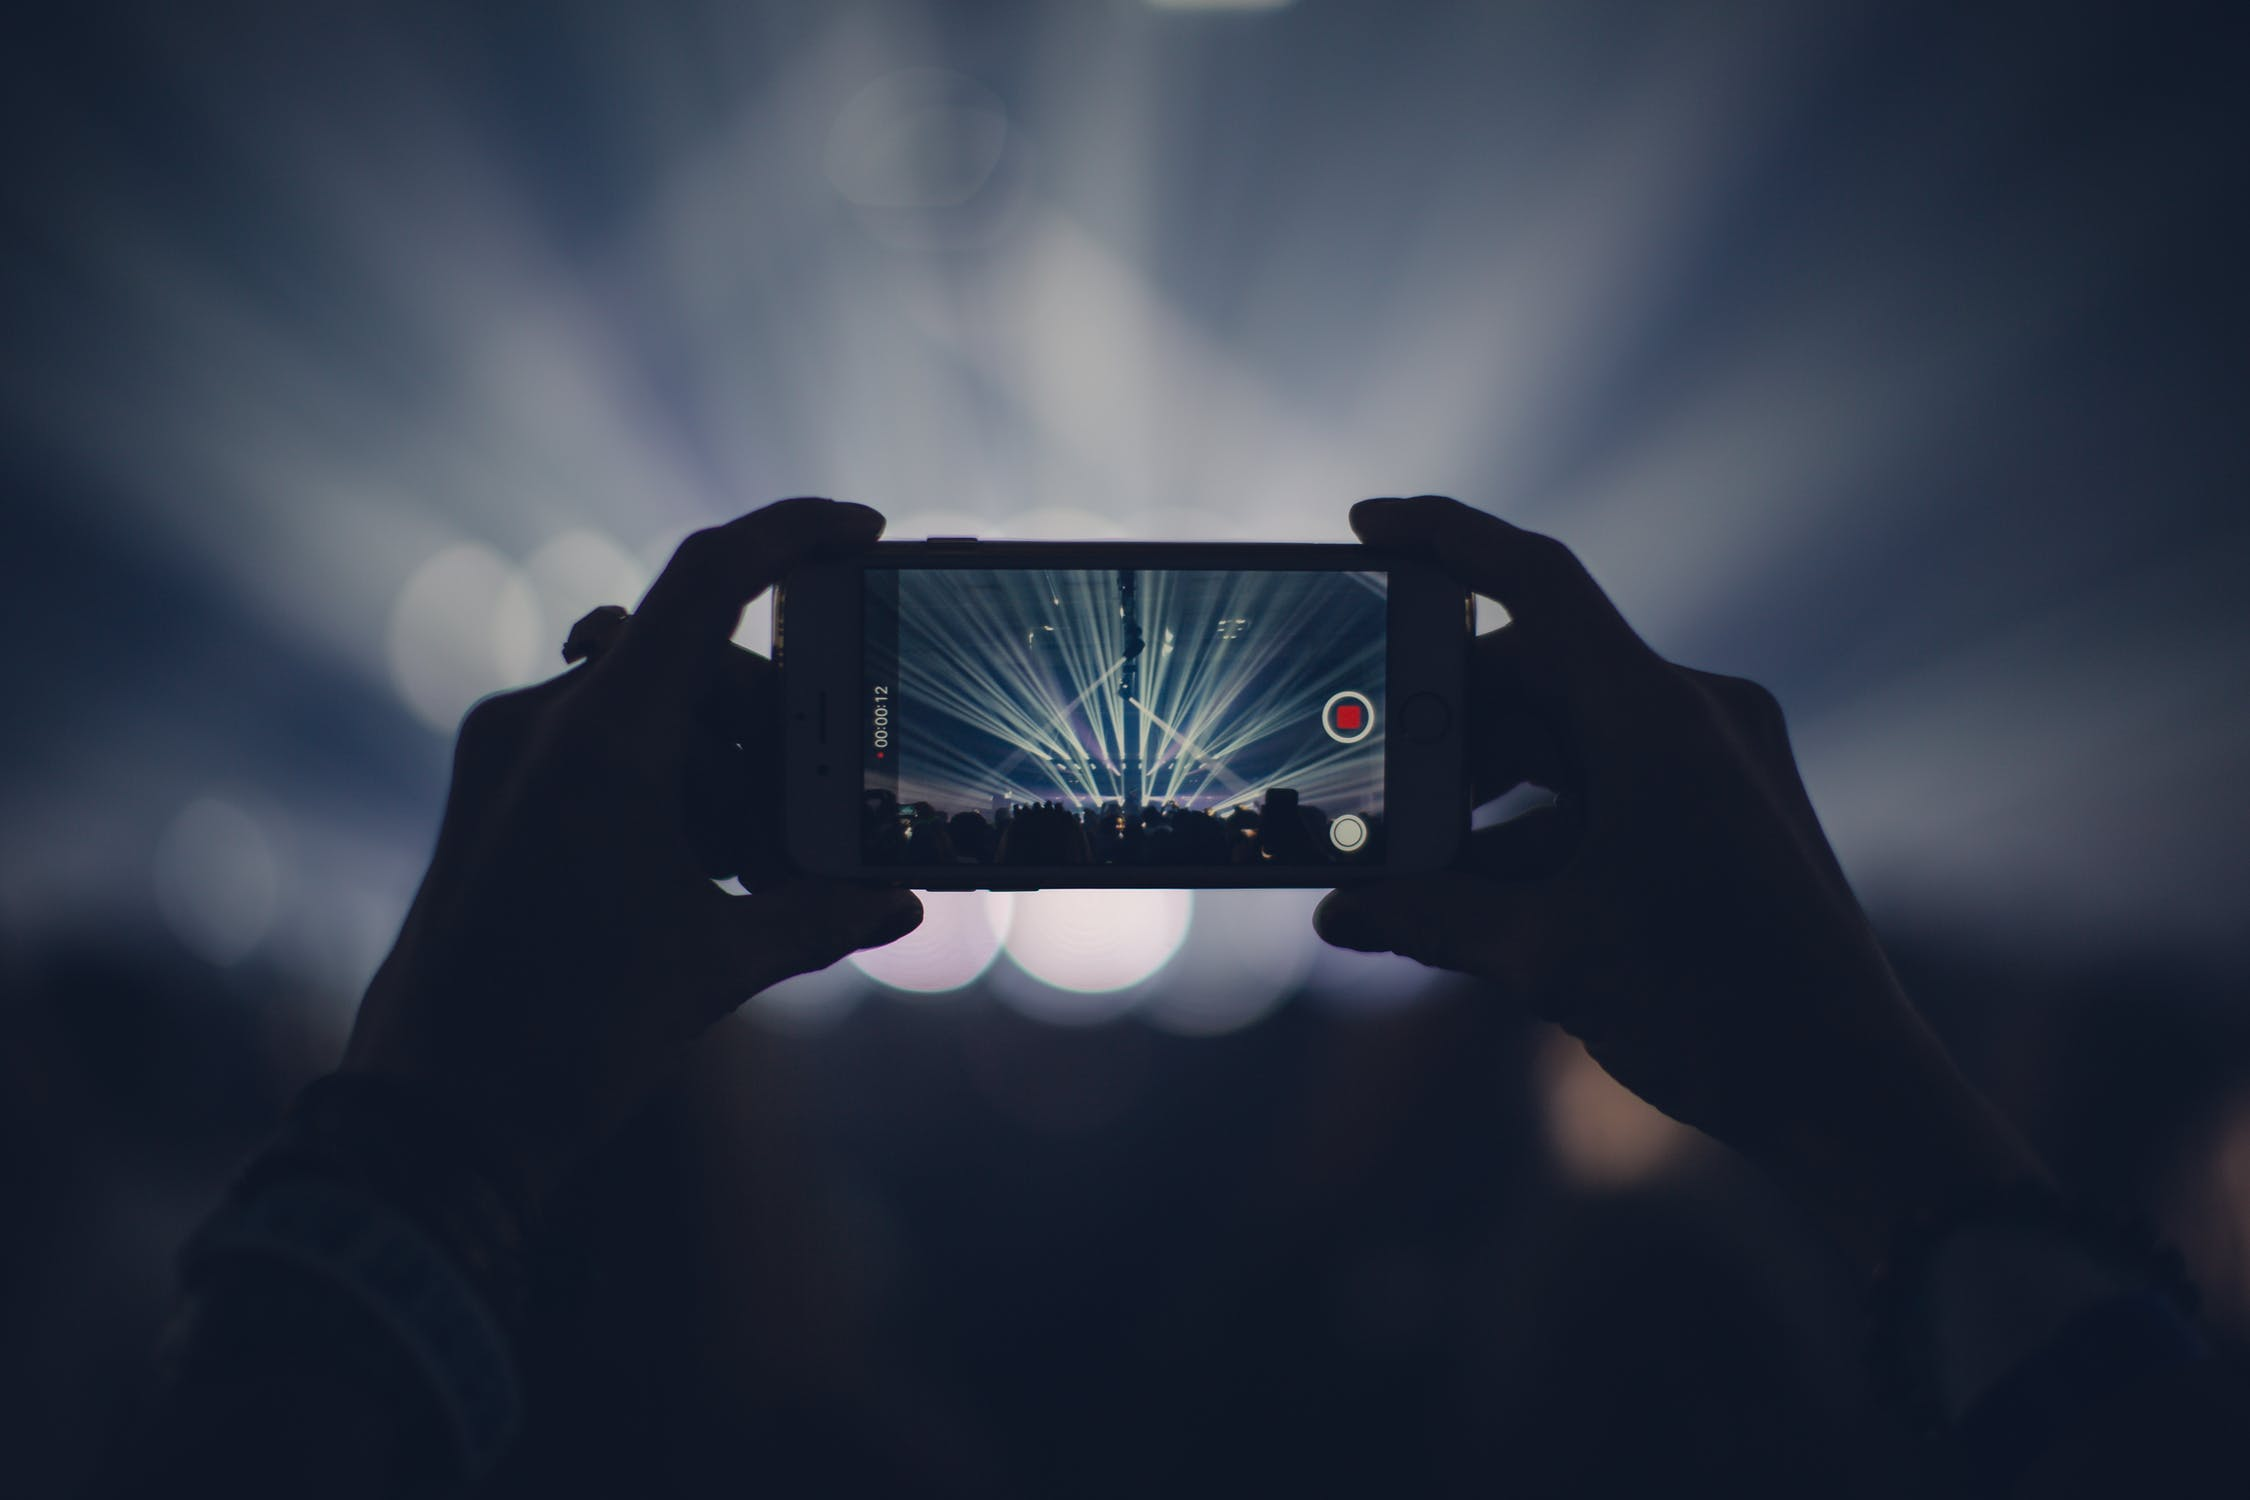 taking a video on phone at concert